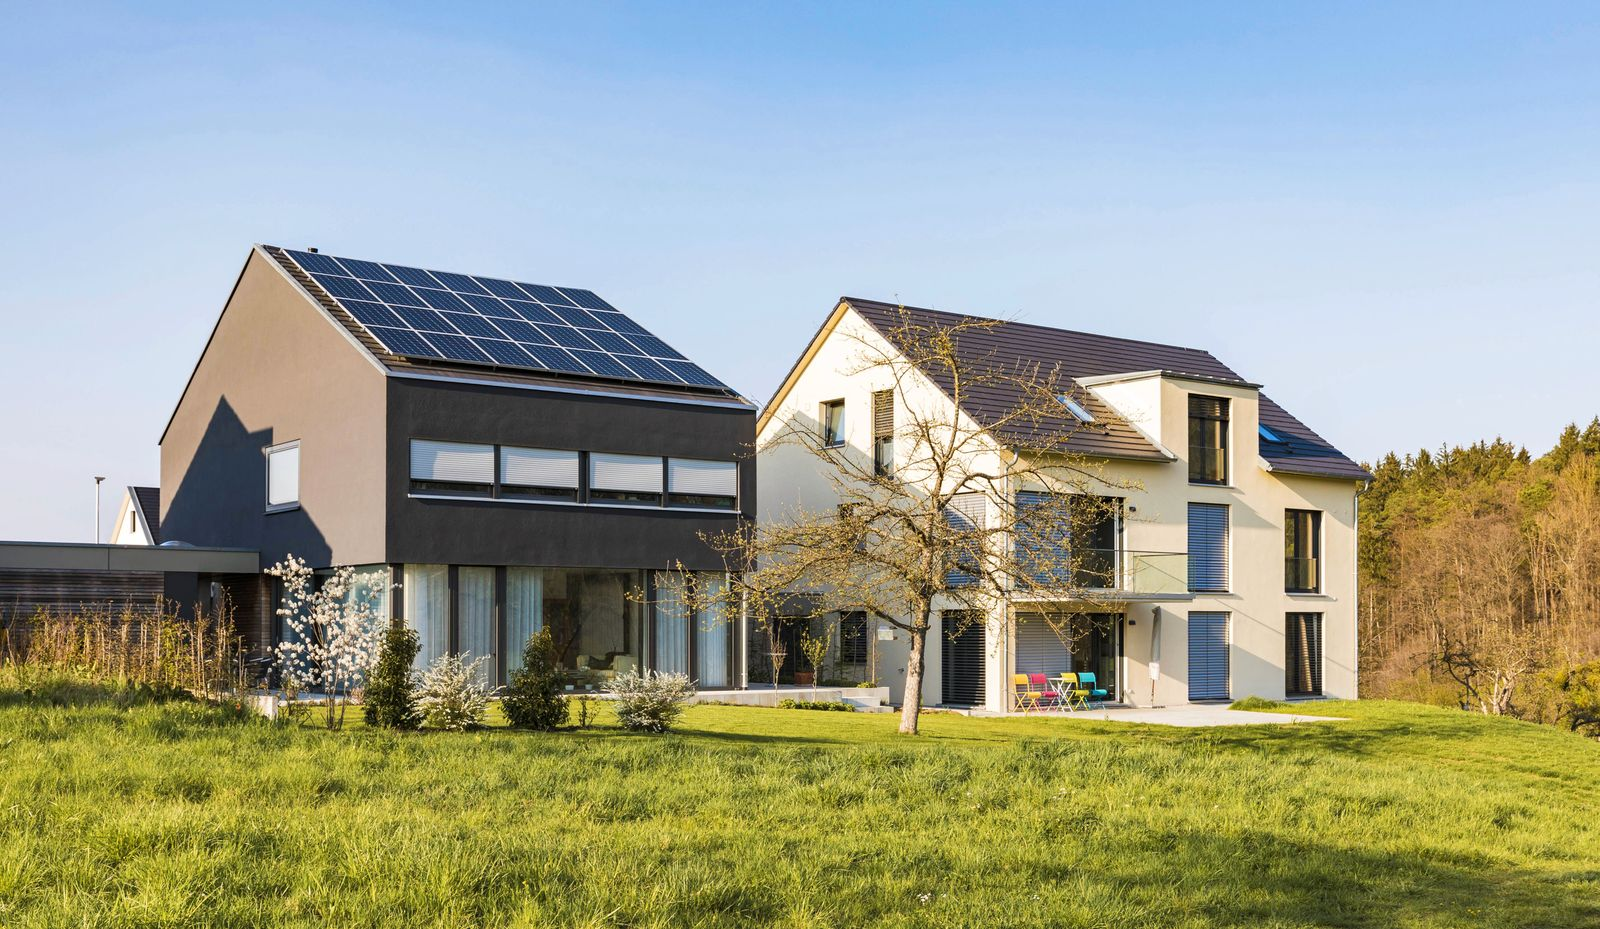 Germany Nuertingen modern one family houses with solar roof PUBLICATIONxINxGERxSUIxAUTxHUNxONLY WD